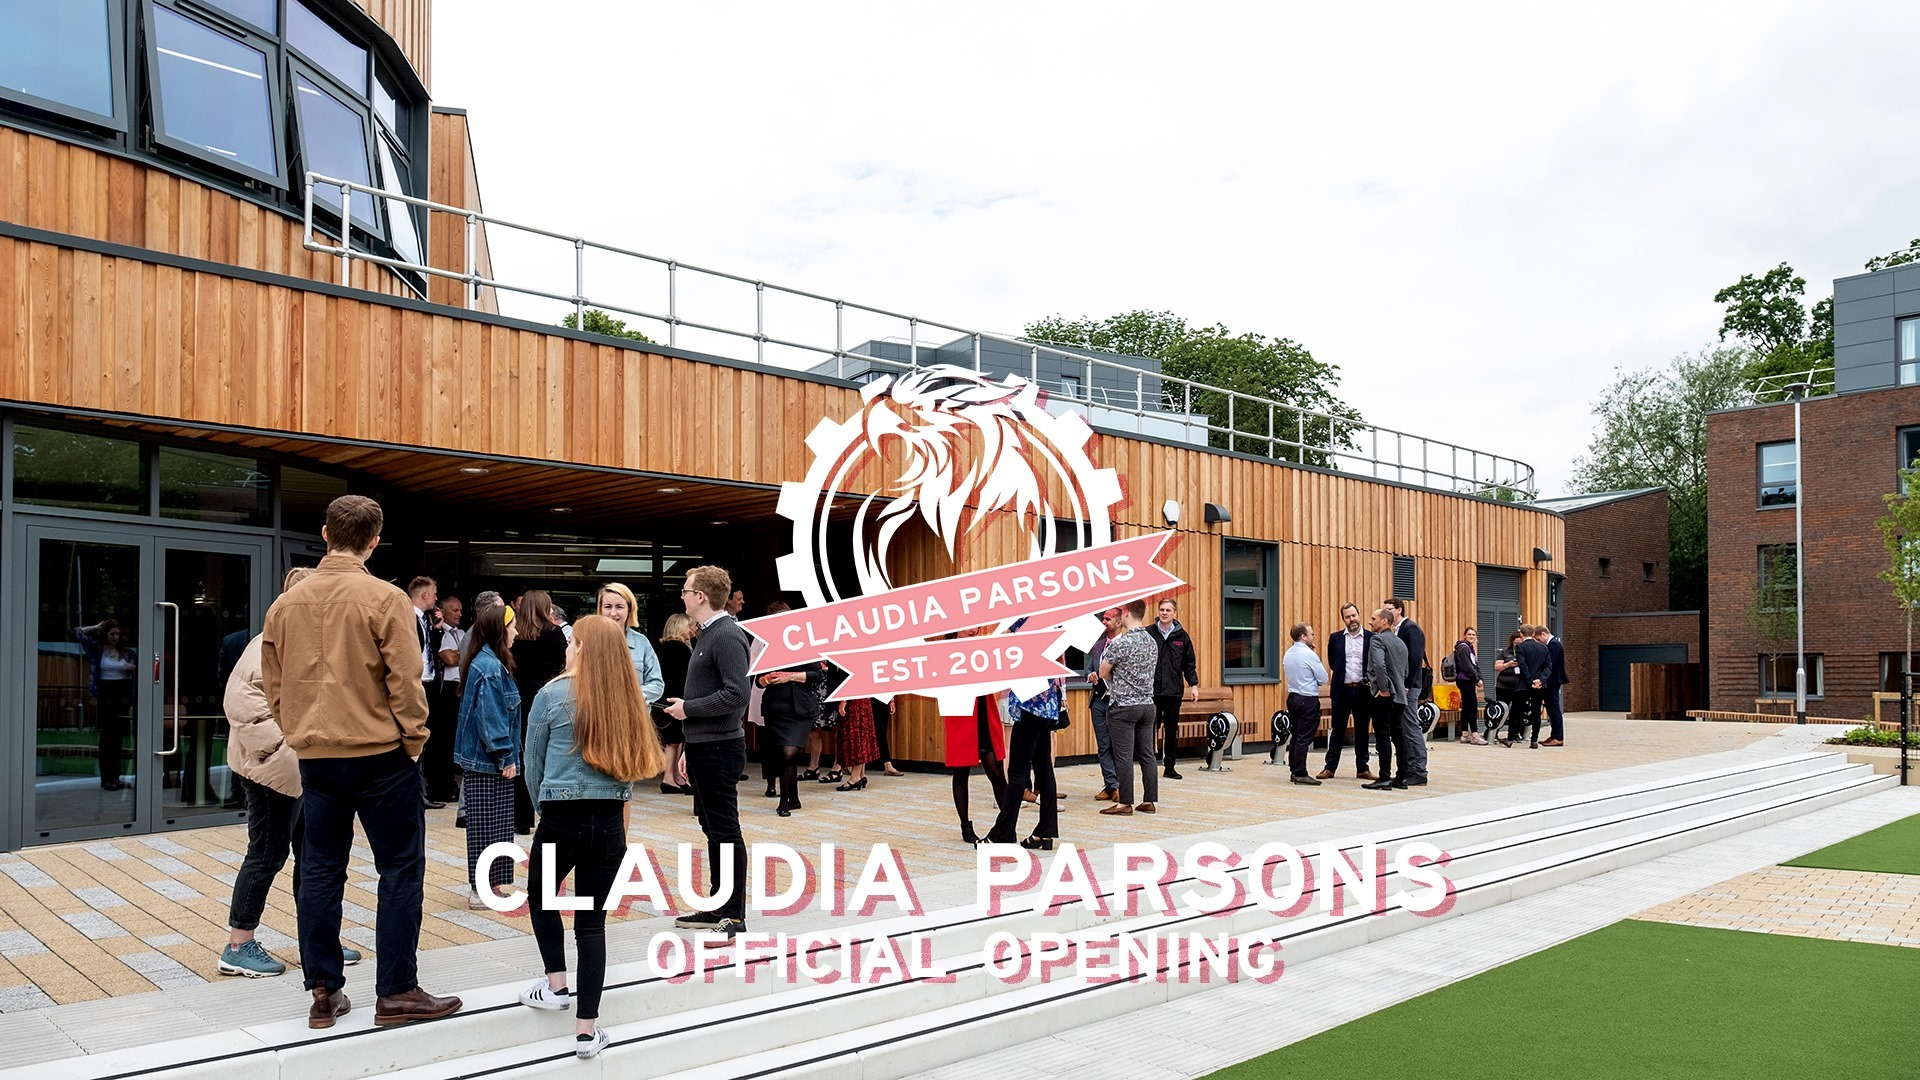 The Claudia Parsons Official Opening 2019